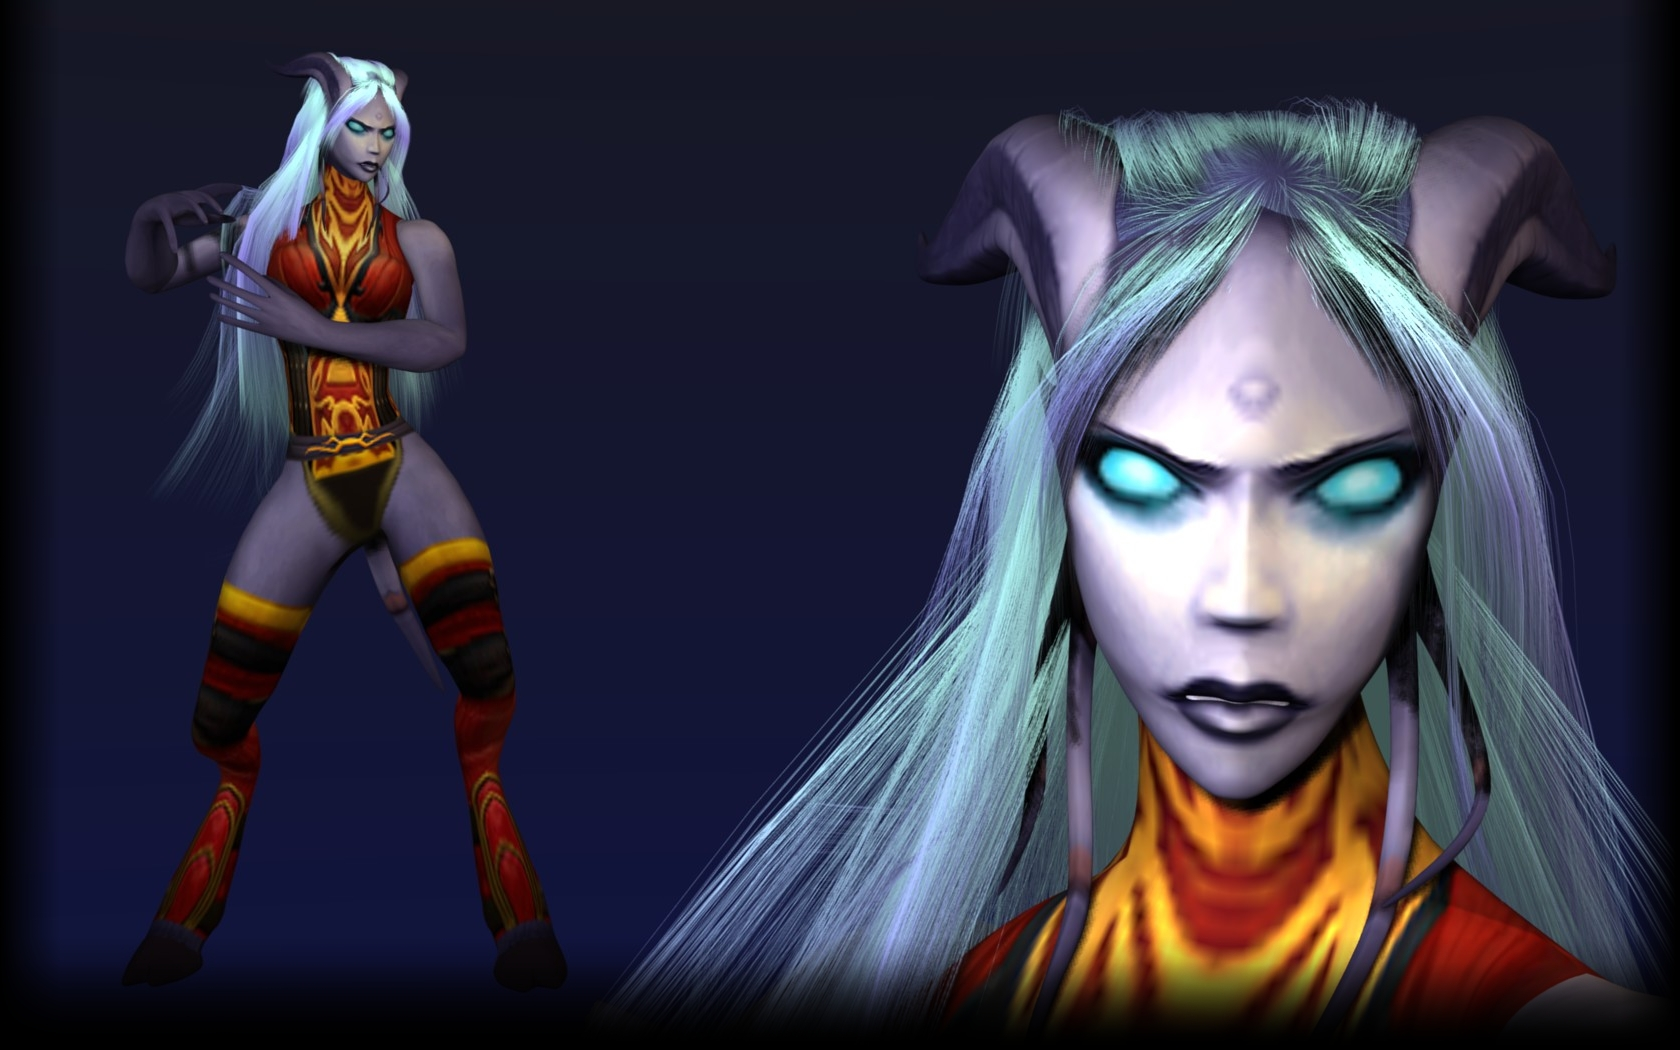 WoW hottest draenei porn actress